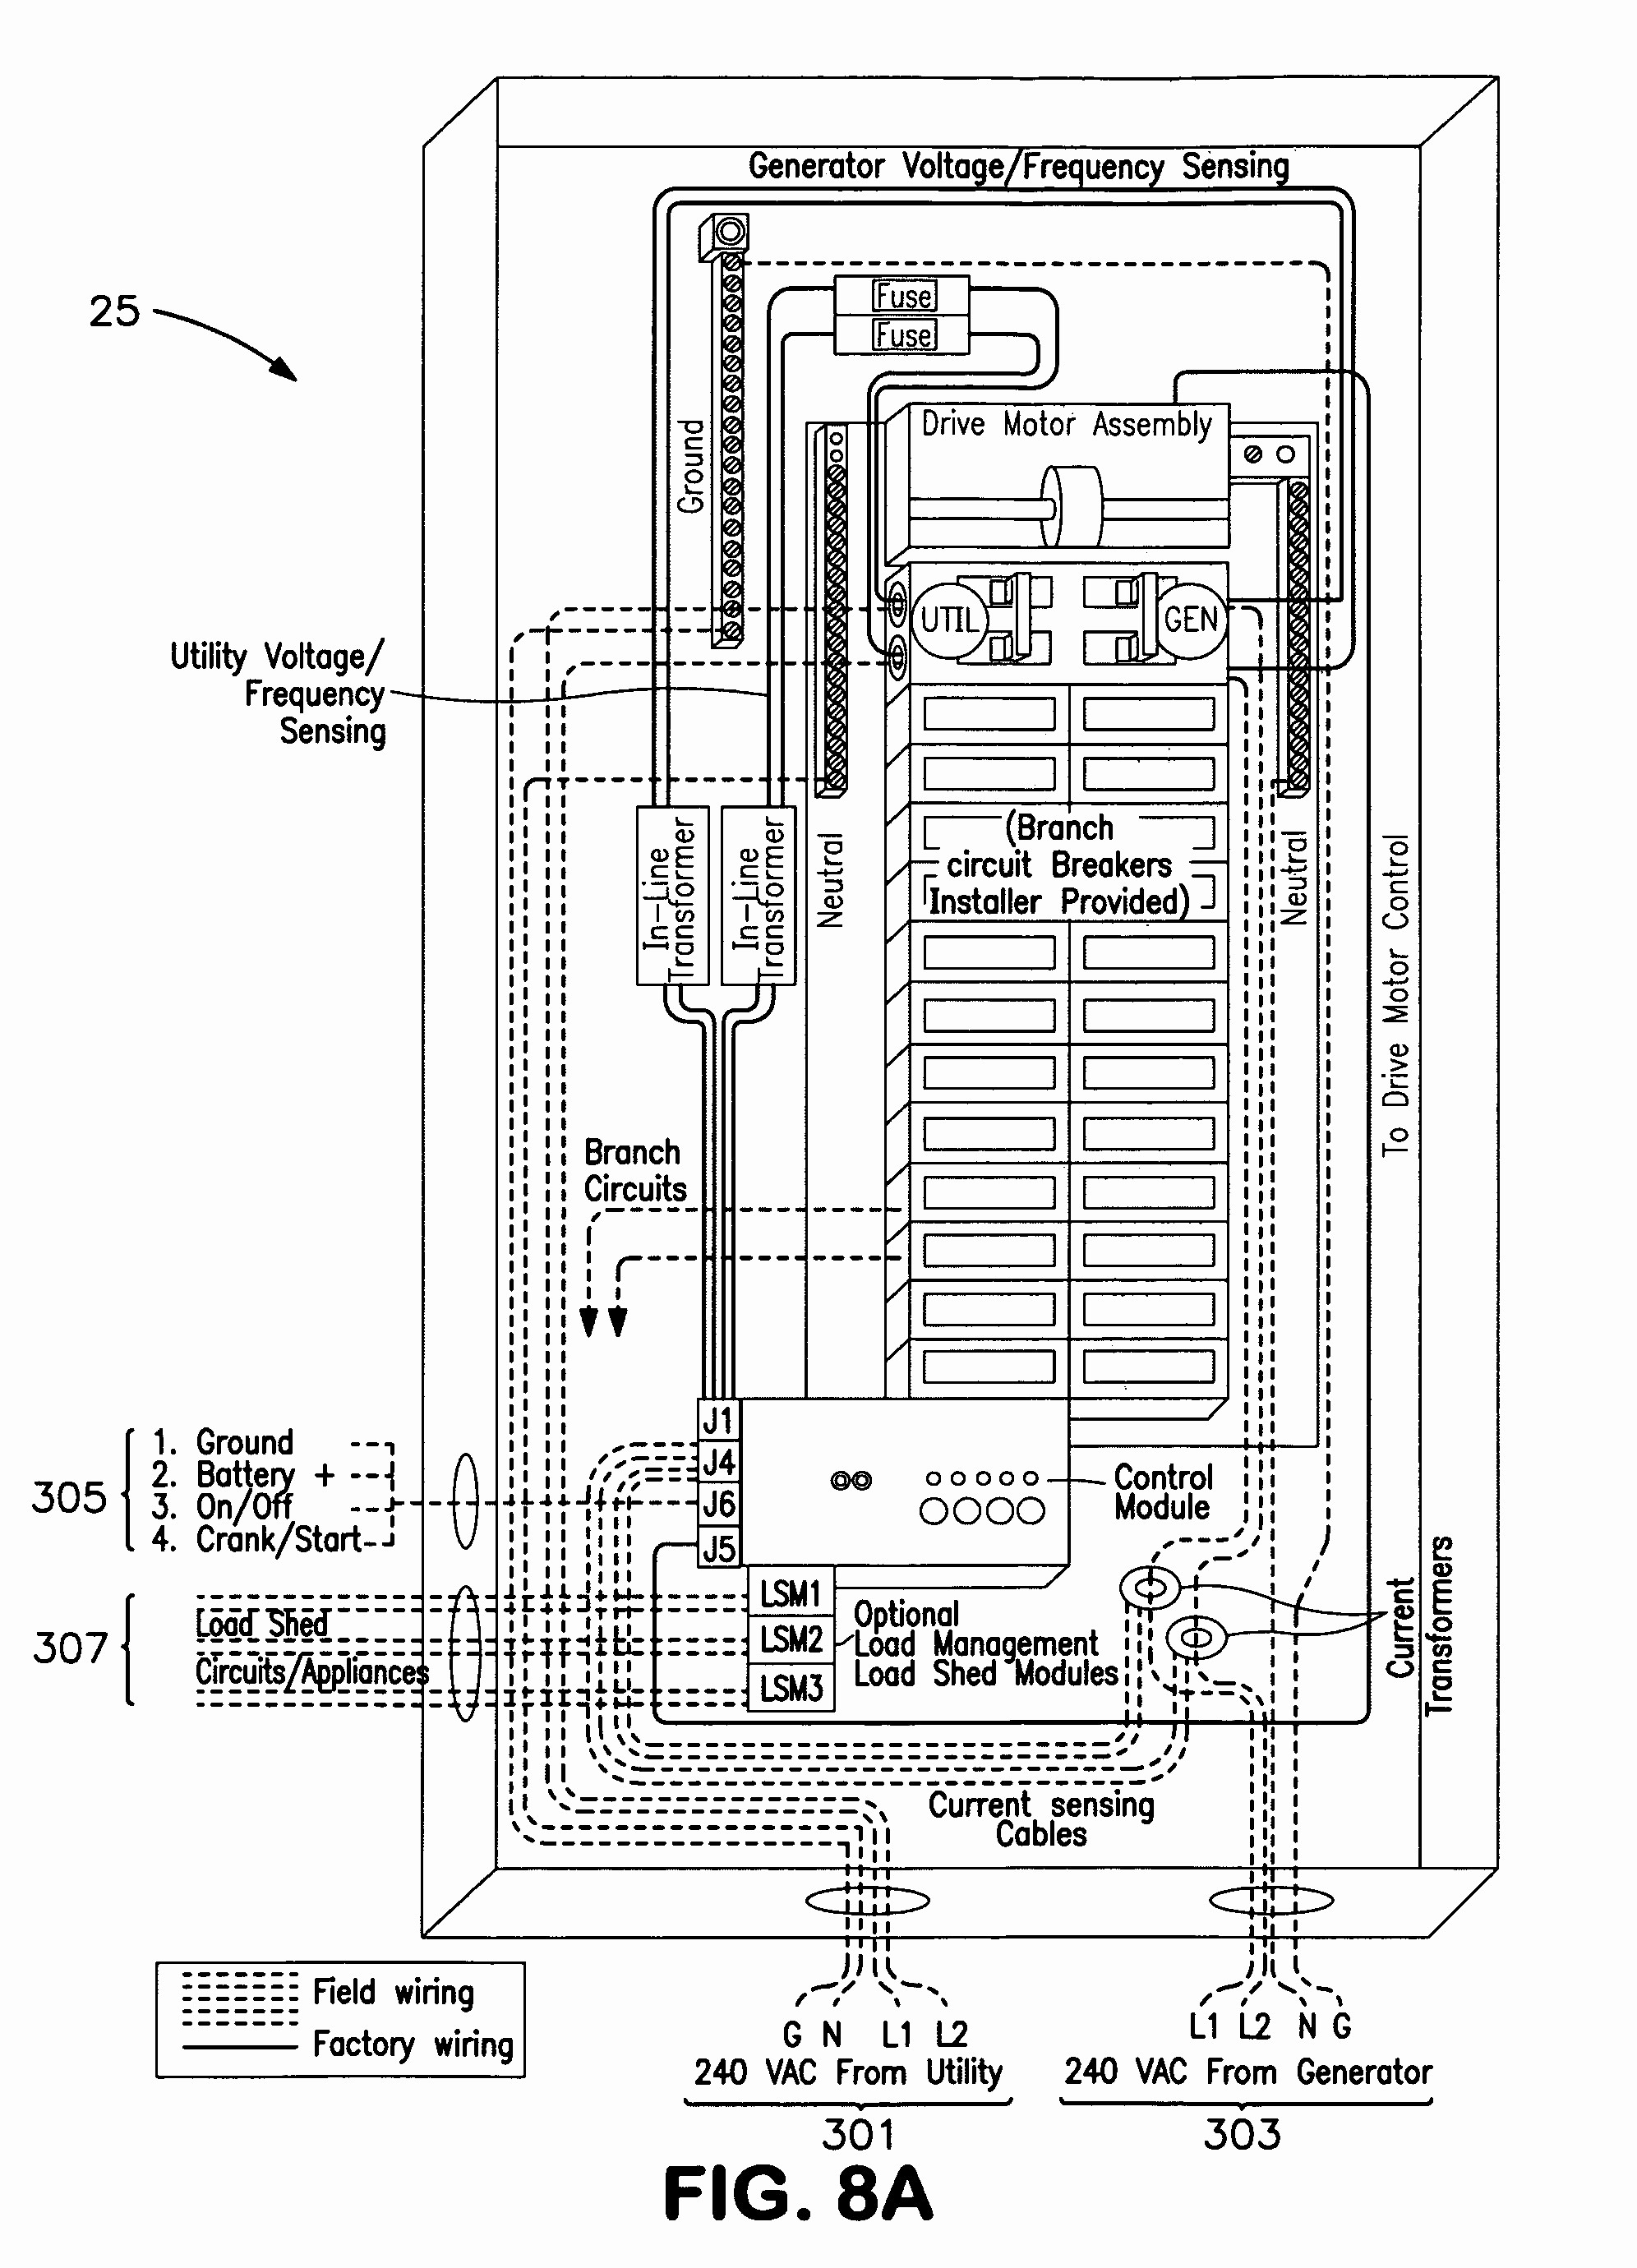 100 Amp Transfer Switch Wiring Diagram